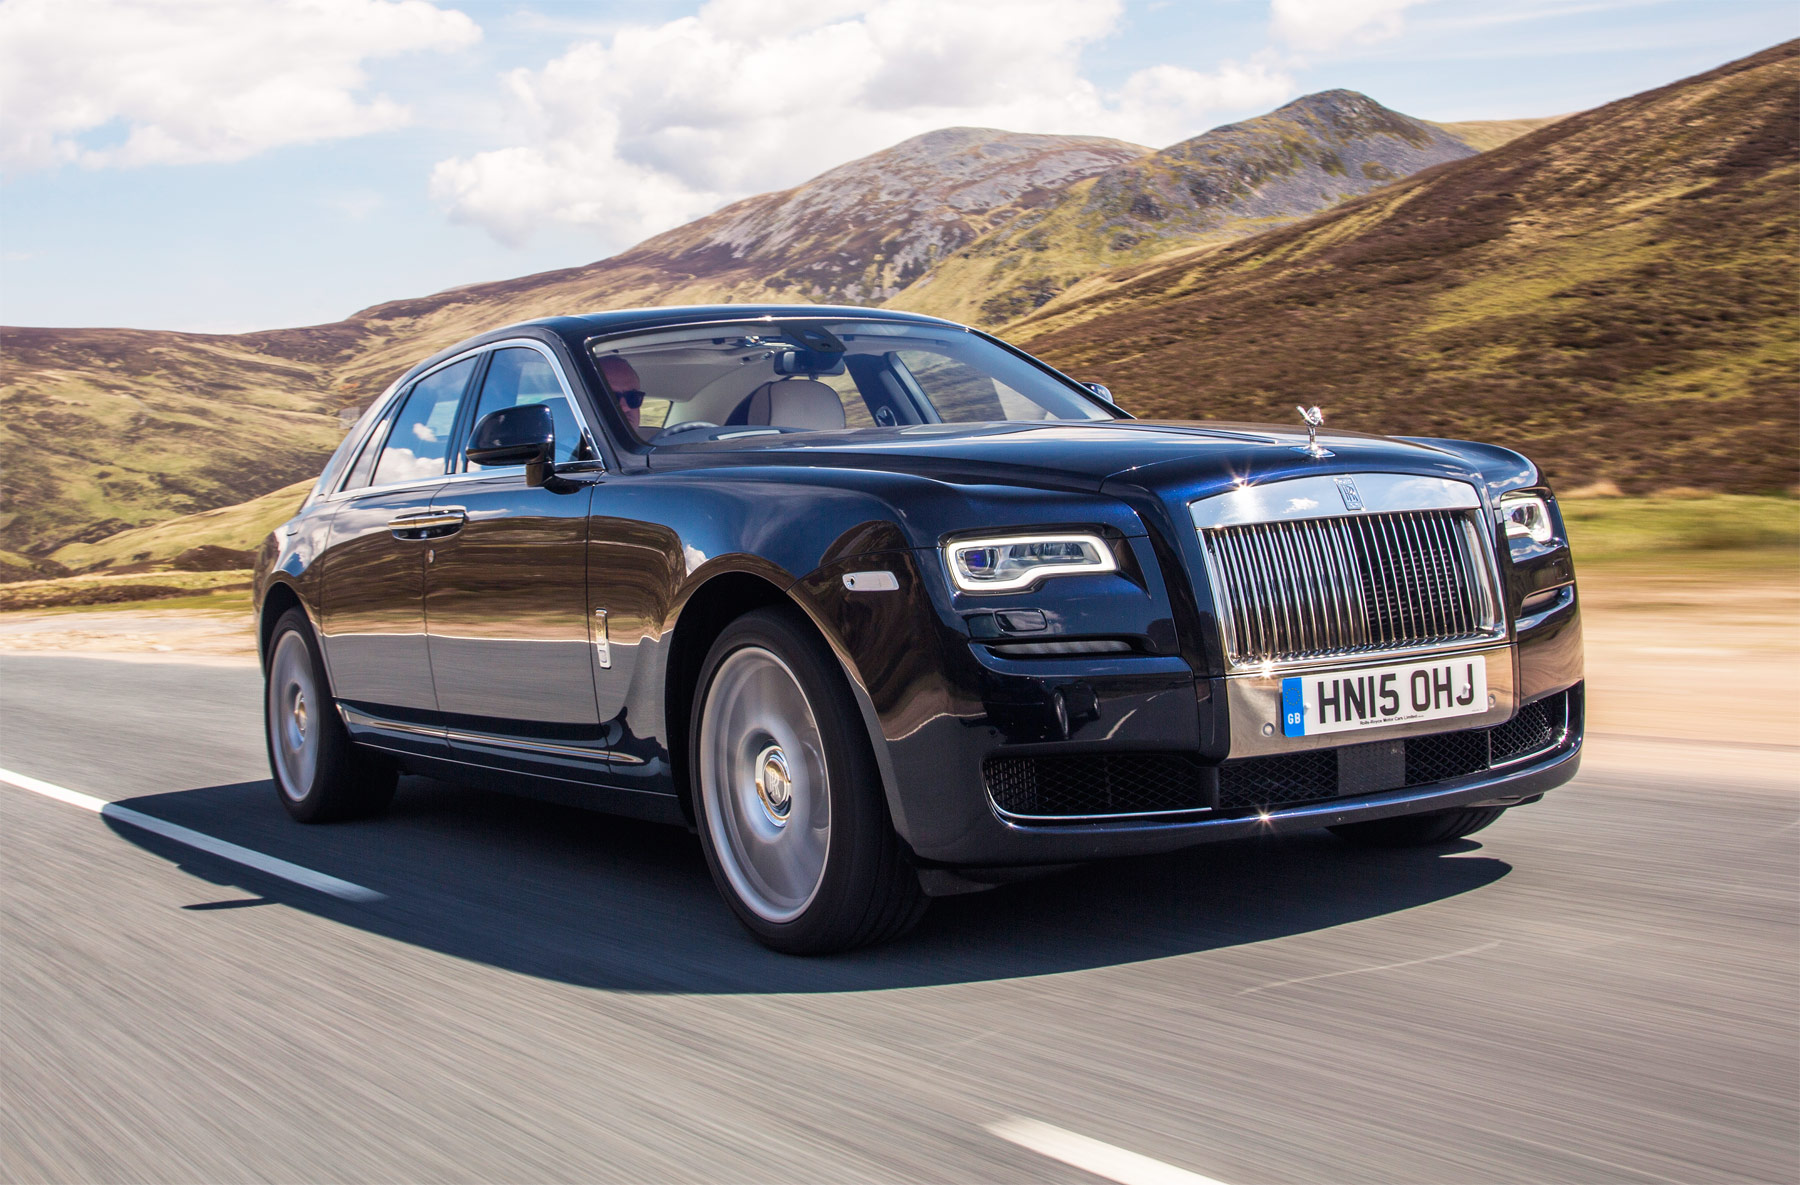 The Rolls Royce Ghost Extended Wheelbase Is Named Best Super Luxury Car By